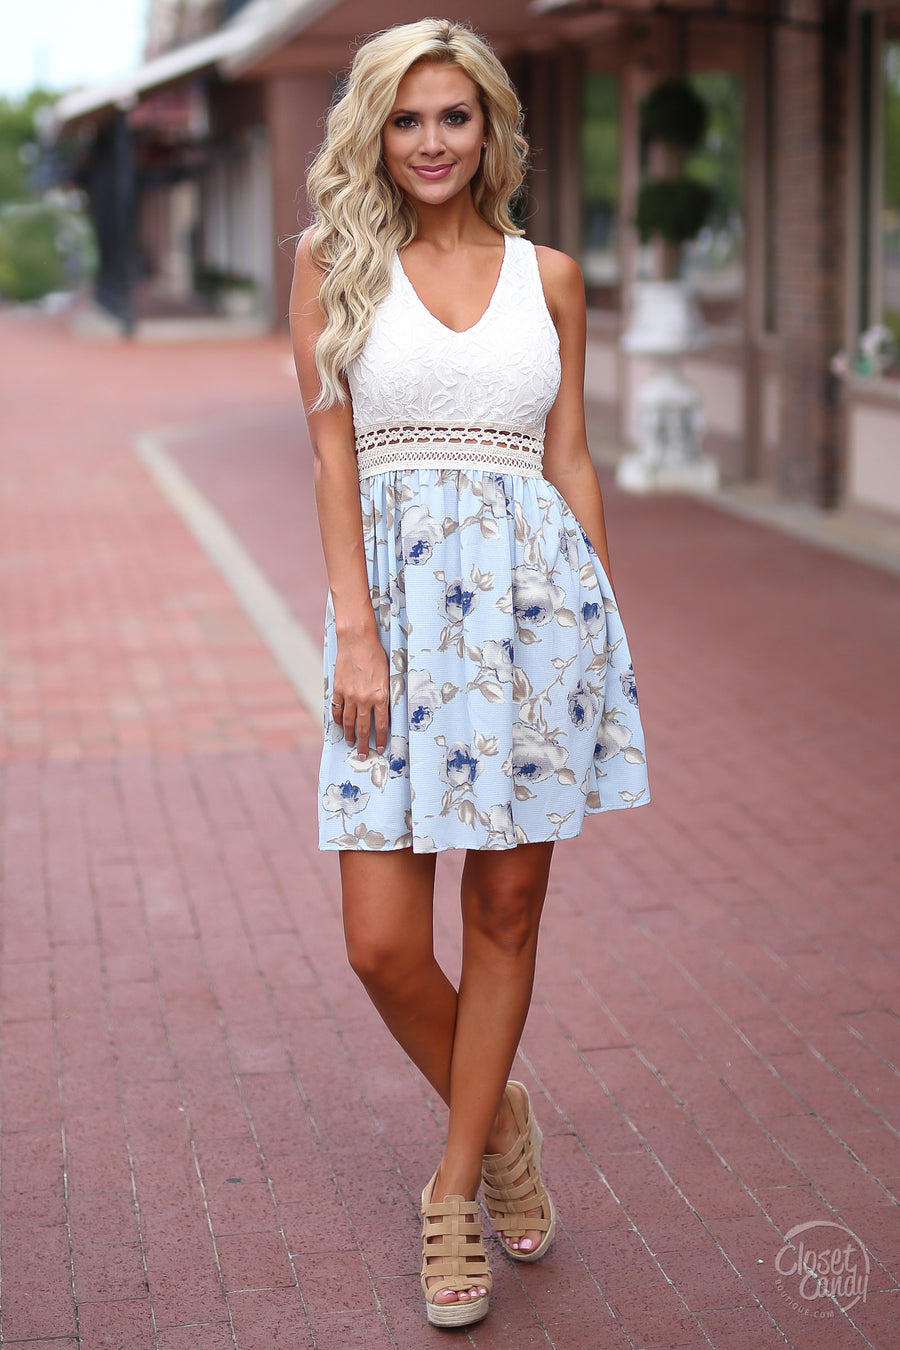 Closet Candy Boutique - cute blue floral sundress with lace, spring and summer outfit